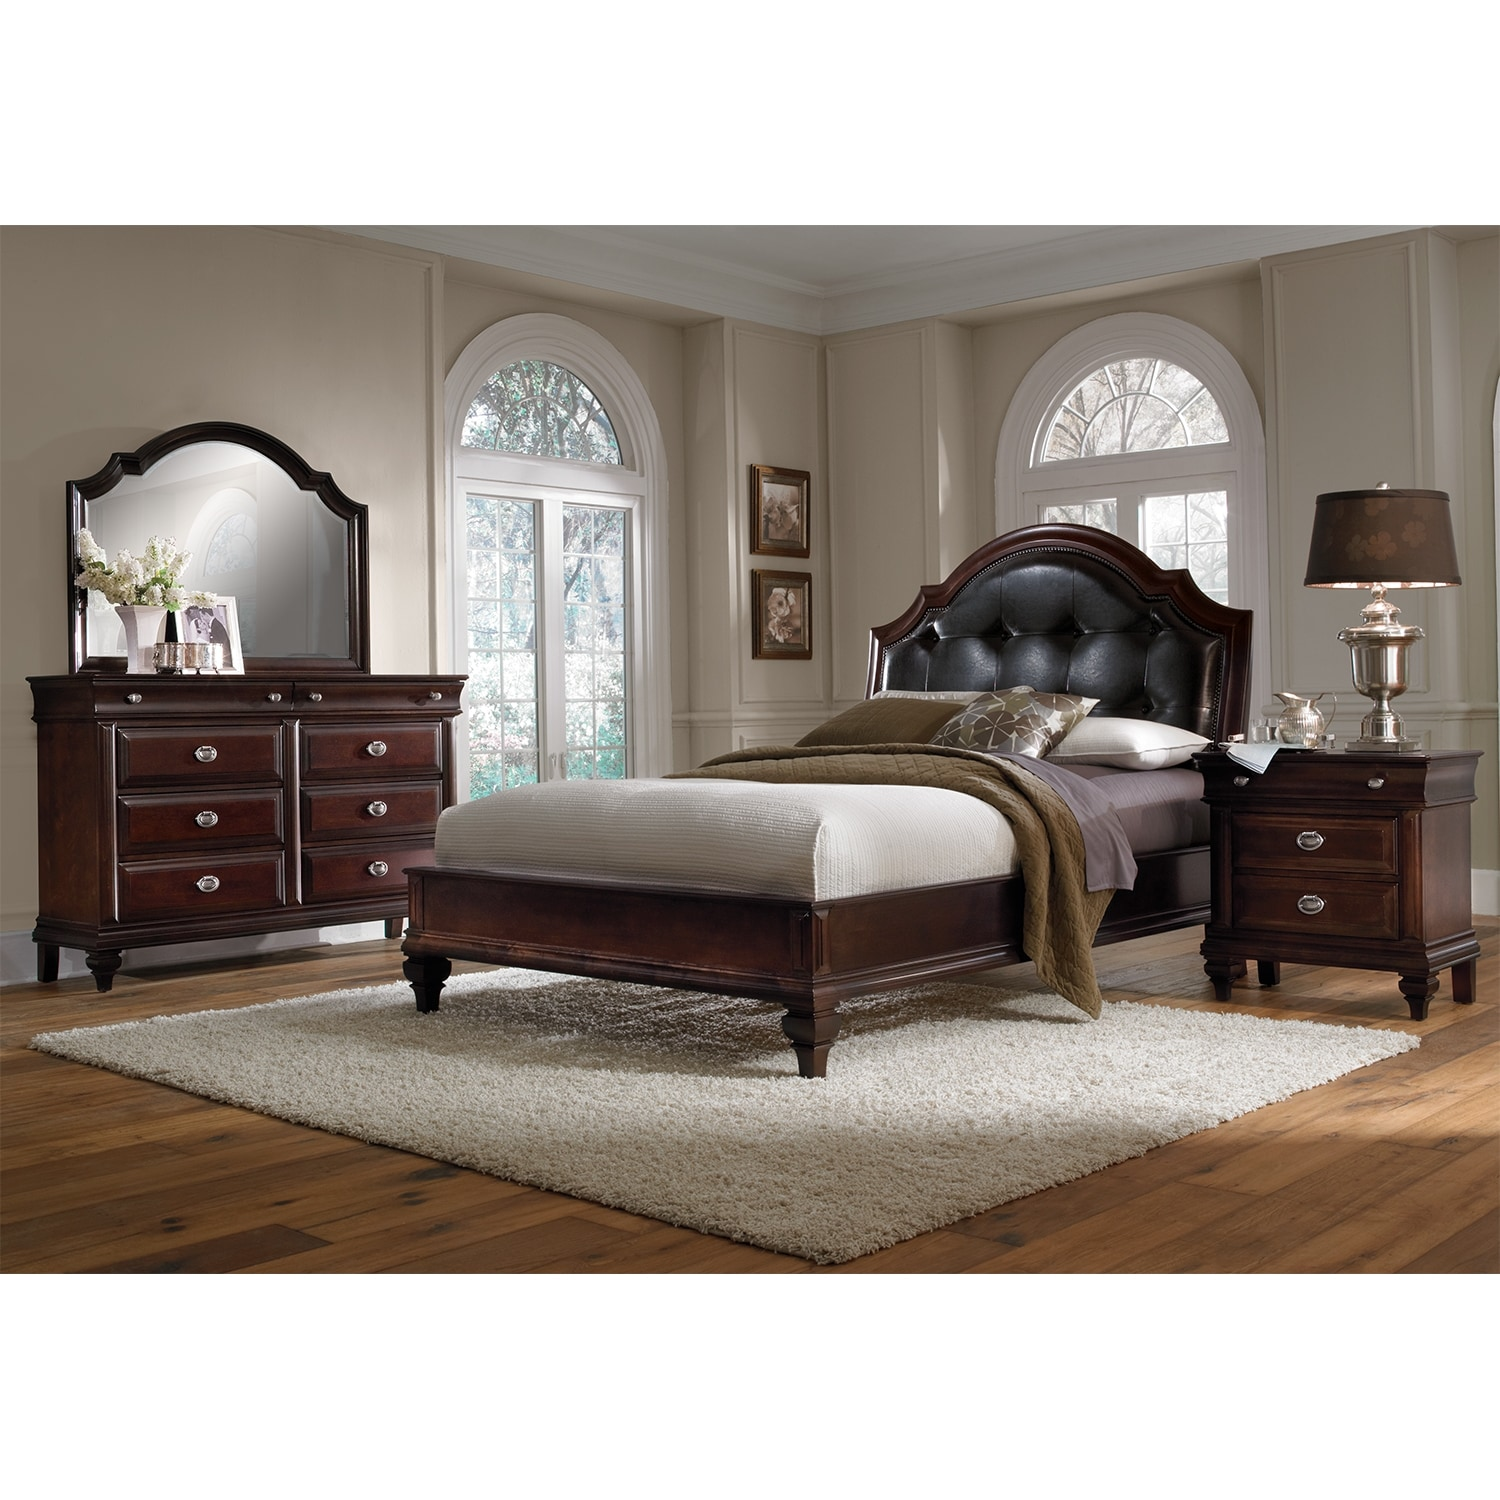 Manhattan 6 piece queen bedroom set cherry value city for Bedroom 6 piece set